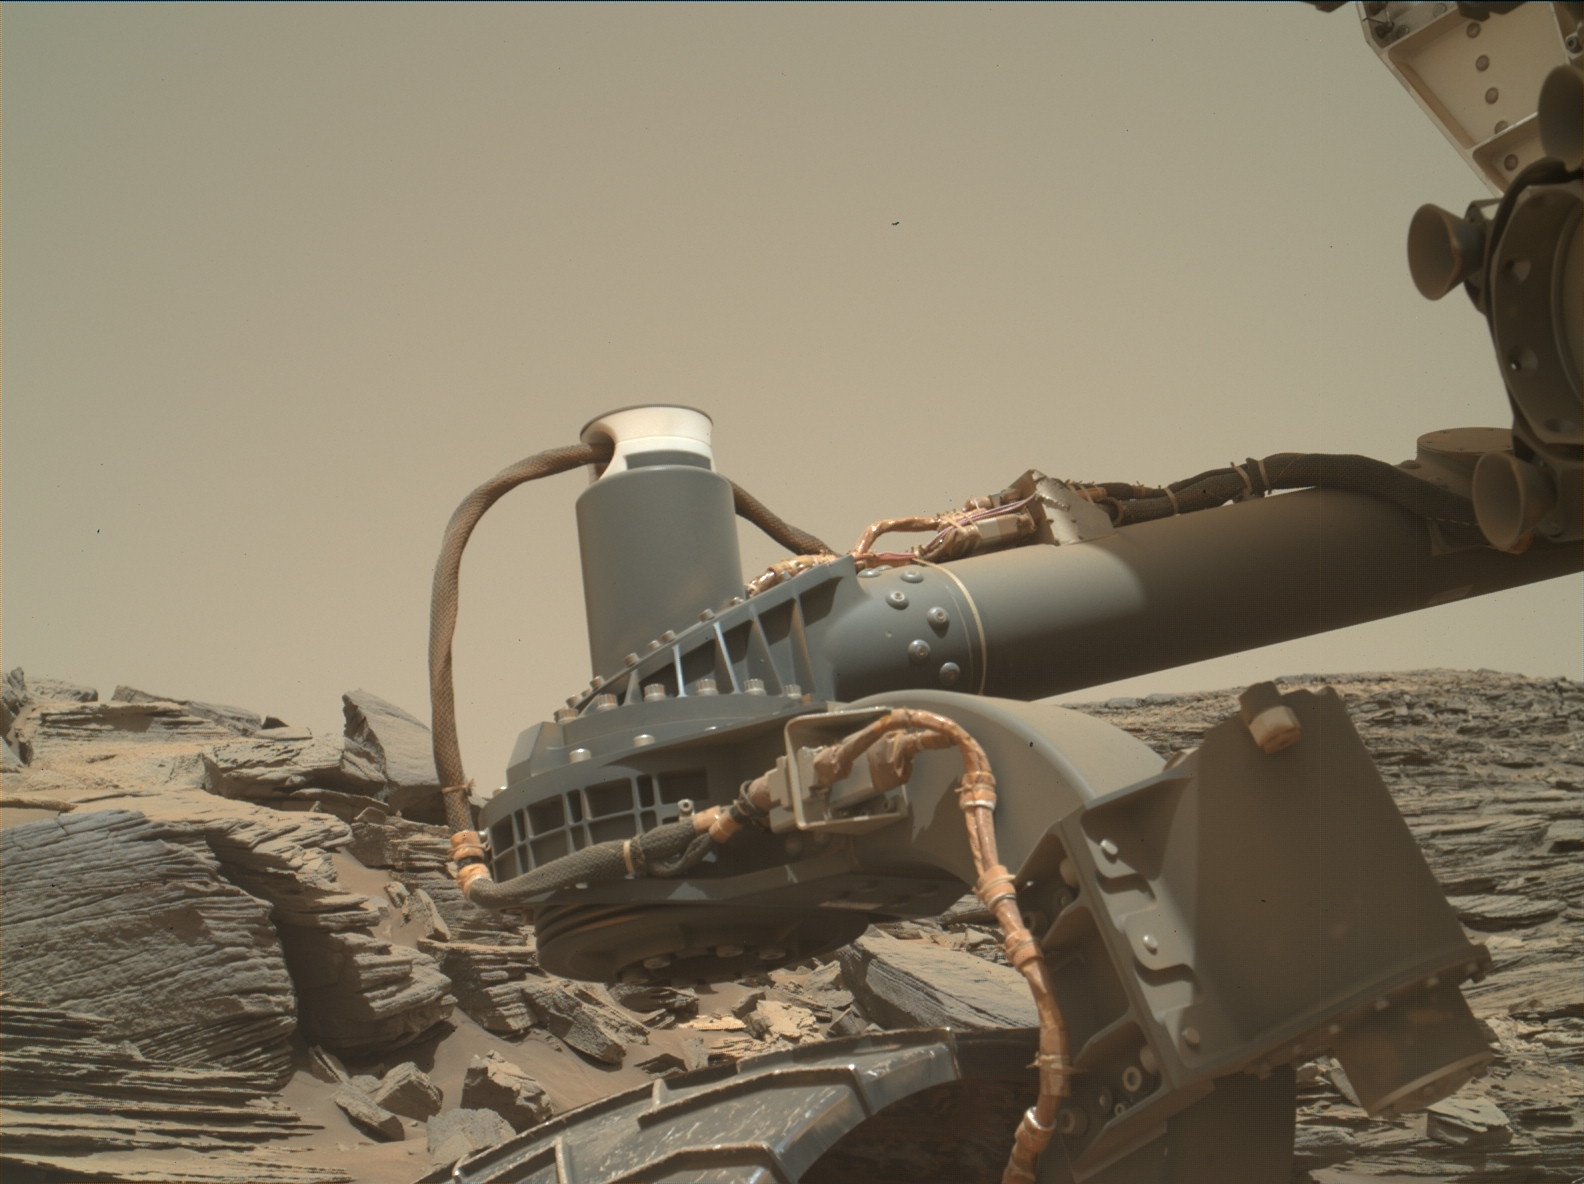 Nasa's Mars rover Curiosity acquired this image using its Mars Hand Lens Imager (MAHLI) on Sol 1065